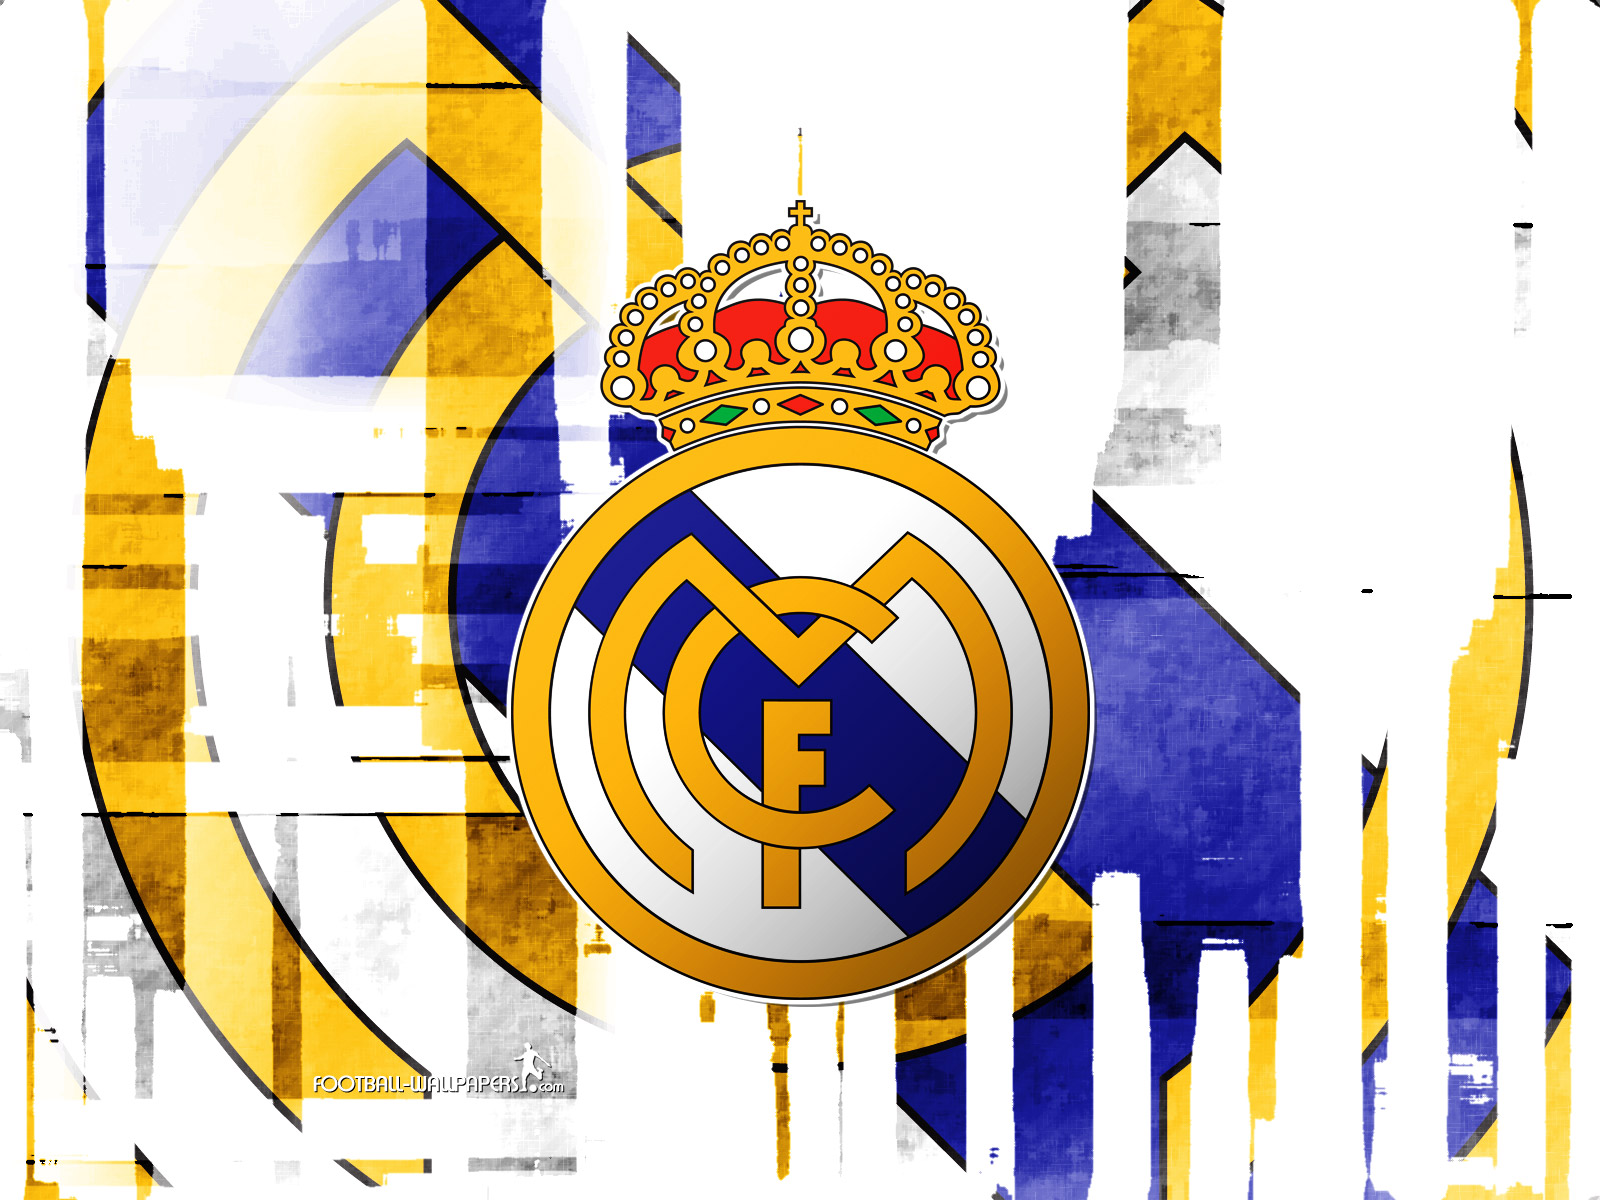 Kumpulan Wallpaper Tema Real Madrid FC HD Terbaru 2016 T Mobile